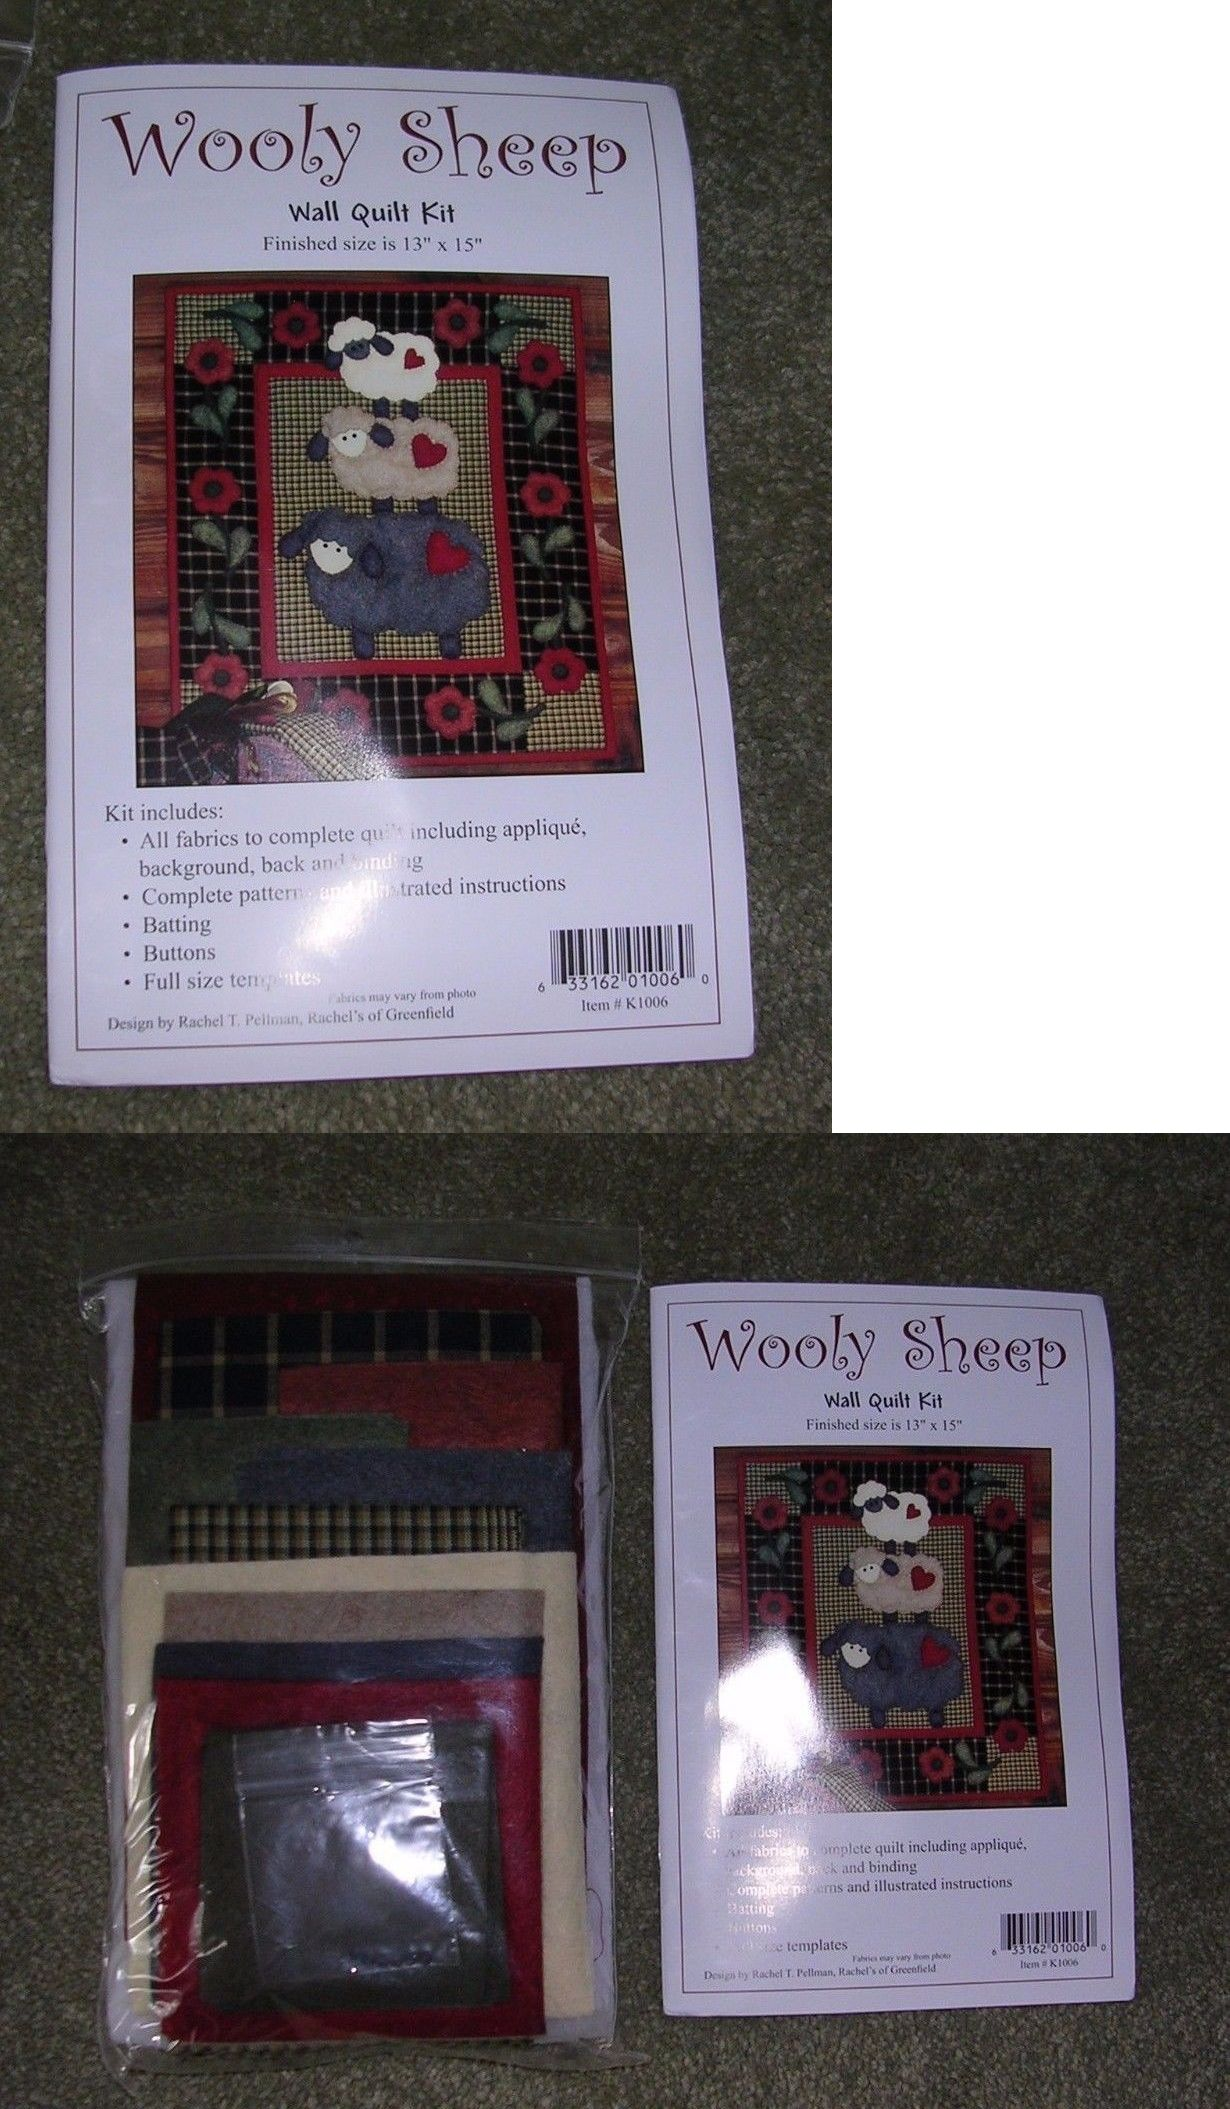 b81d061cefcb Quilt Patterns 83957  Wooly Sheep Applique Wall Quilt Kit By Rachel Pellman  -  BUY IT NOW ONLY   35.99 on eBay!